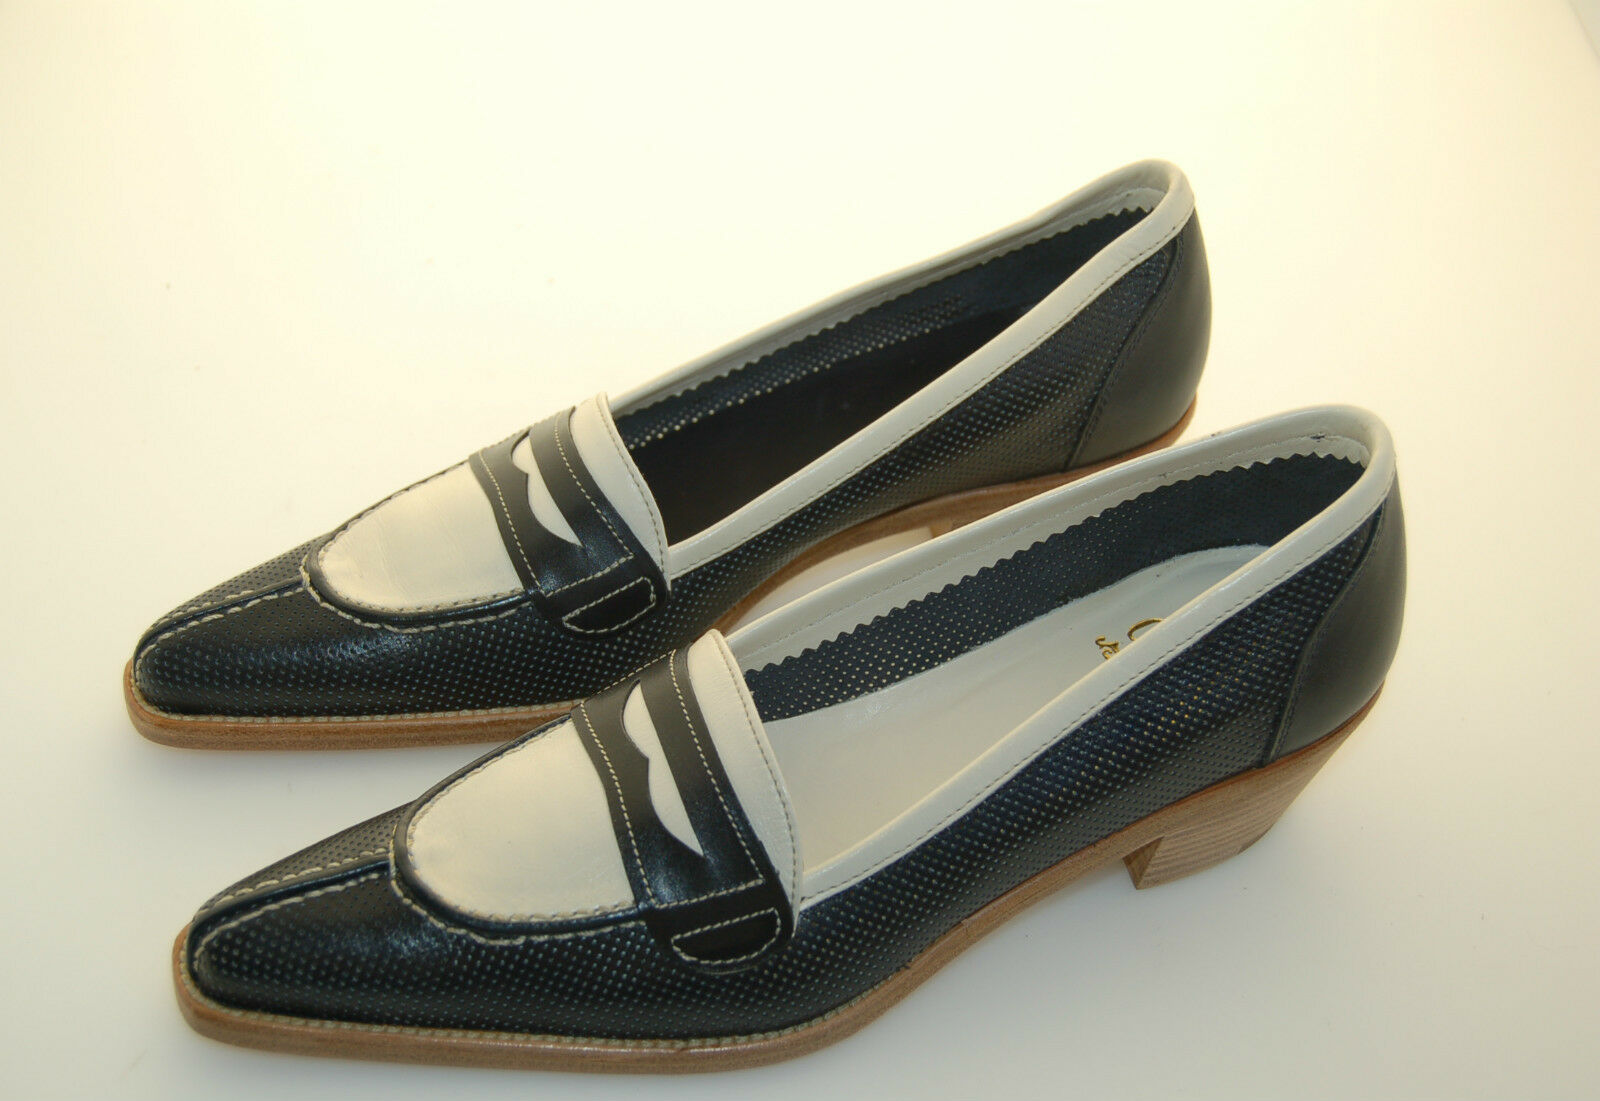 WOMAN - 37 - PENNY LOAFER - MOCASSINO - PERFORED BLU CALF+ WHITE CALF - LTH SOLE